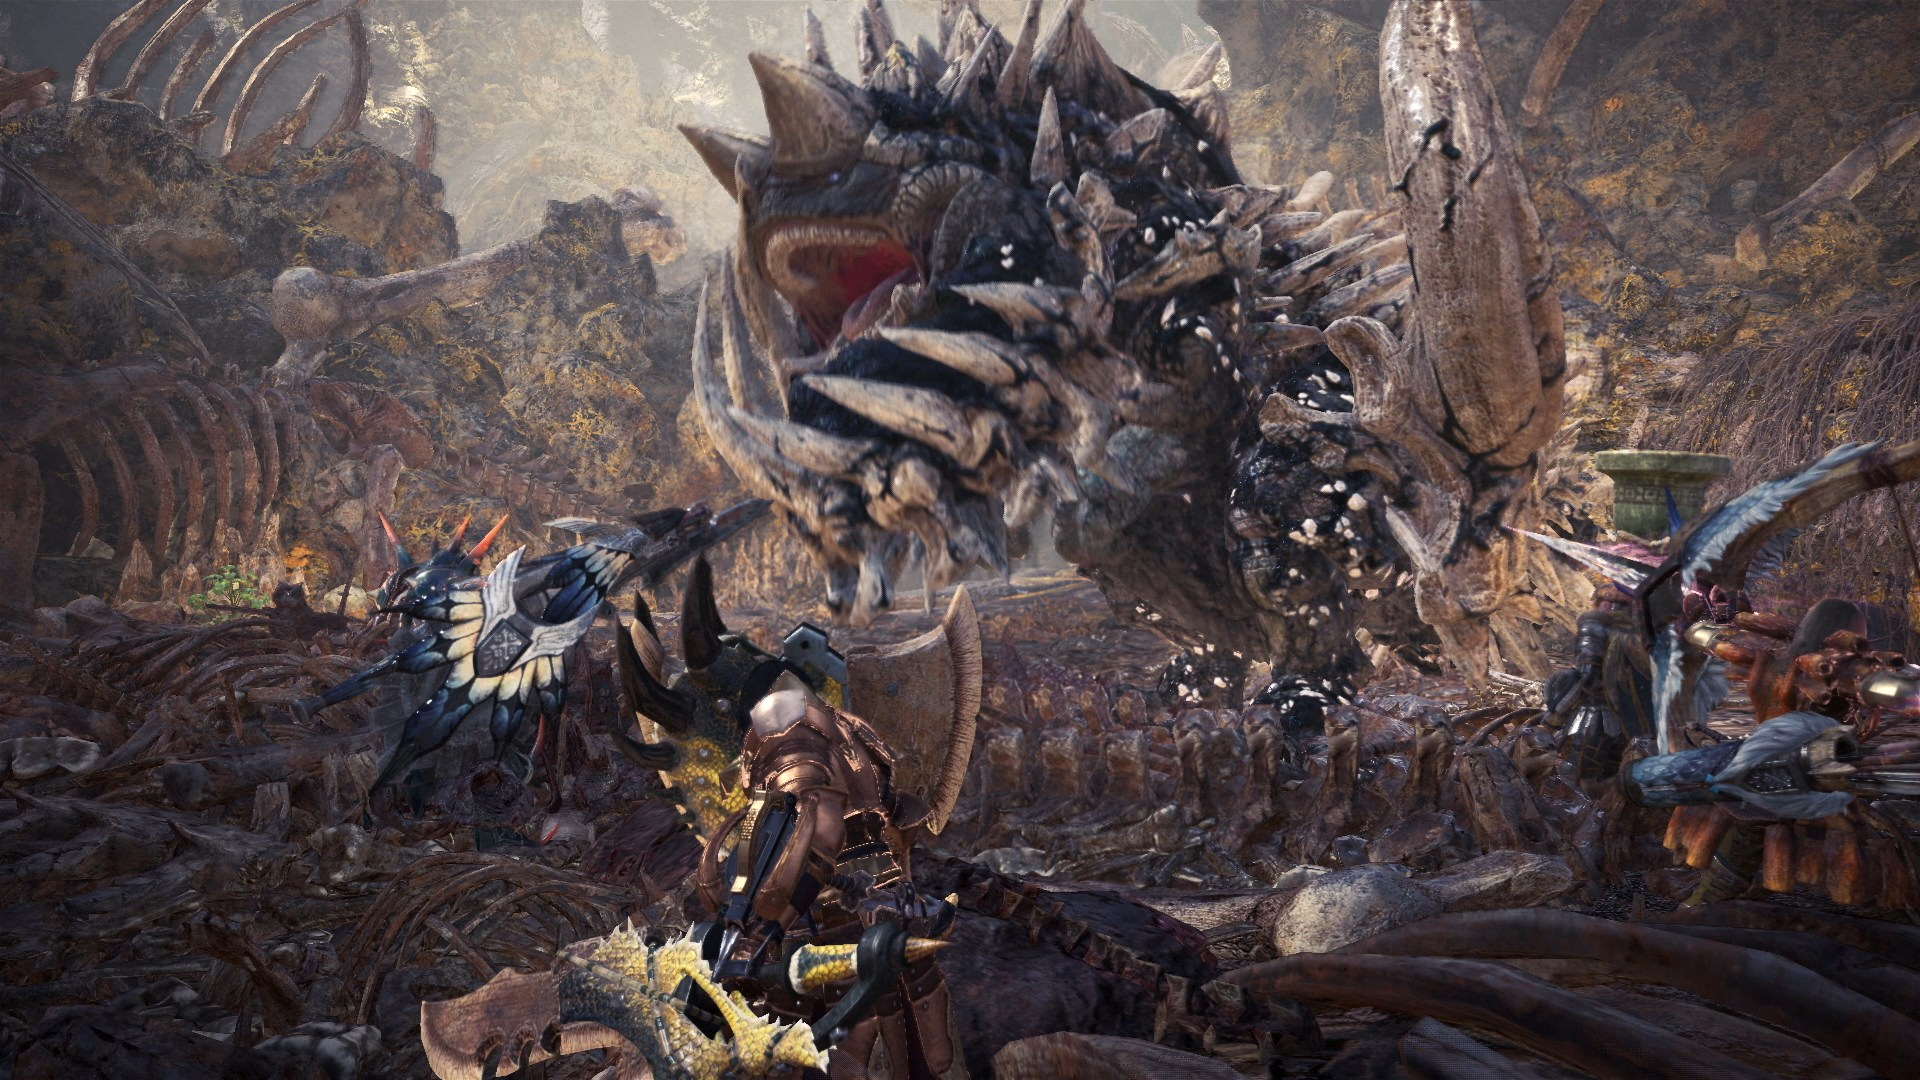 Exclusive Monster Hunter World Devs Fly In To Share Their World